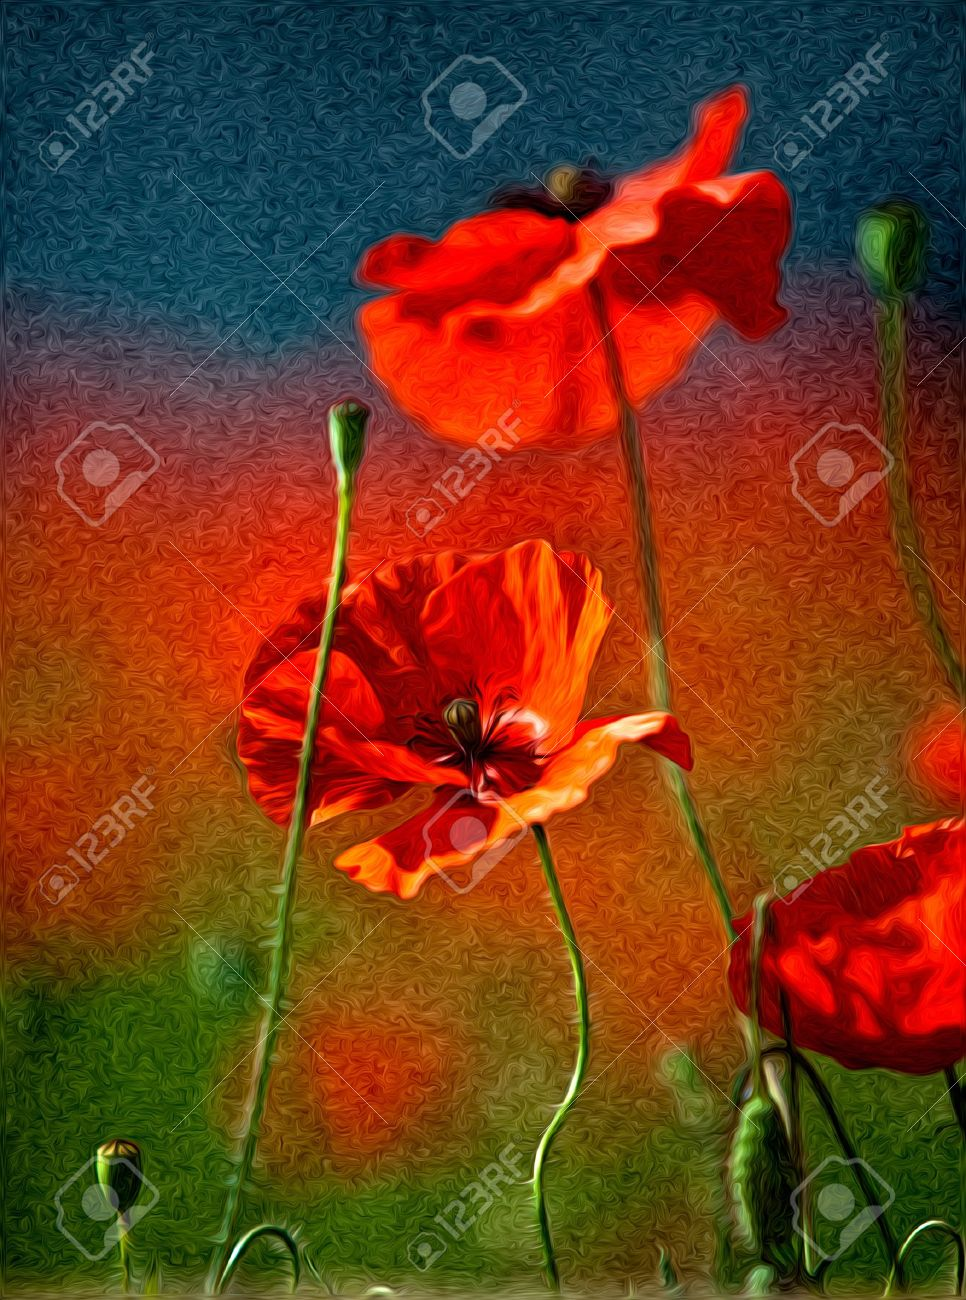 Illustration of Red Poppy Flowers in Oil Painting Style Stock Illustration - 10903203